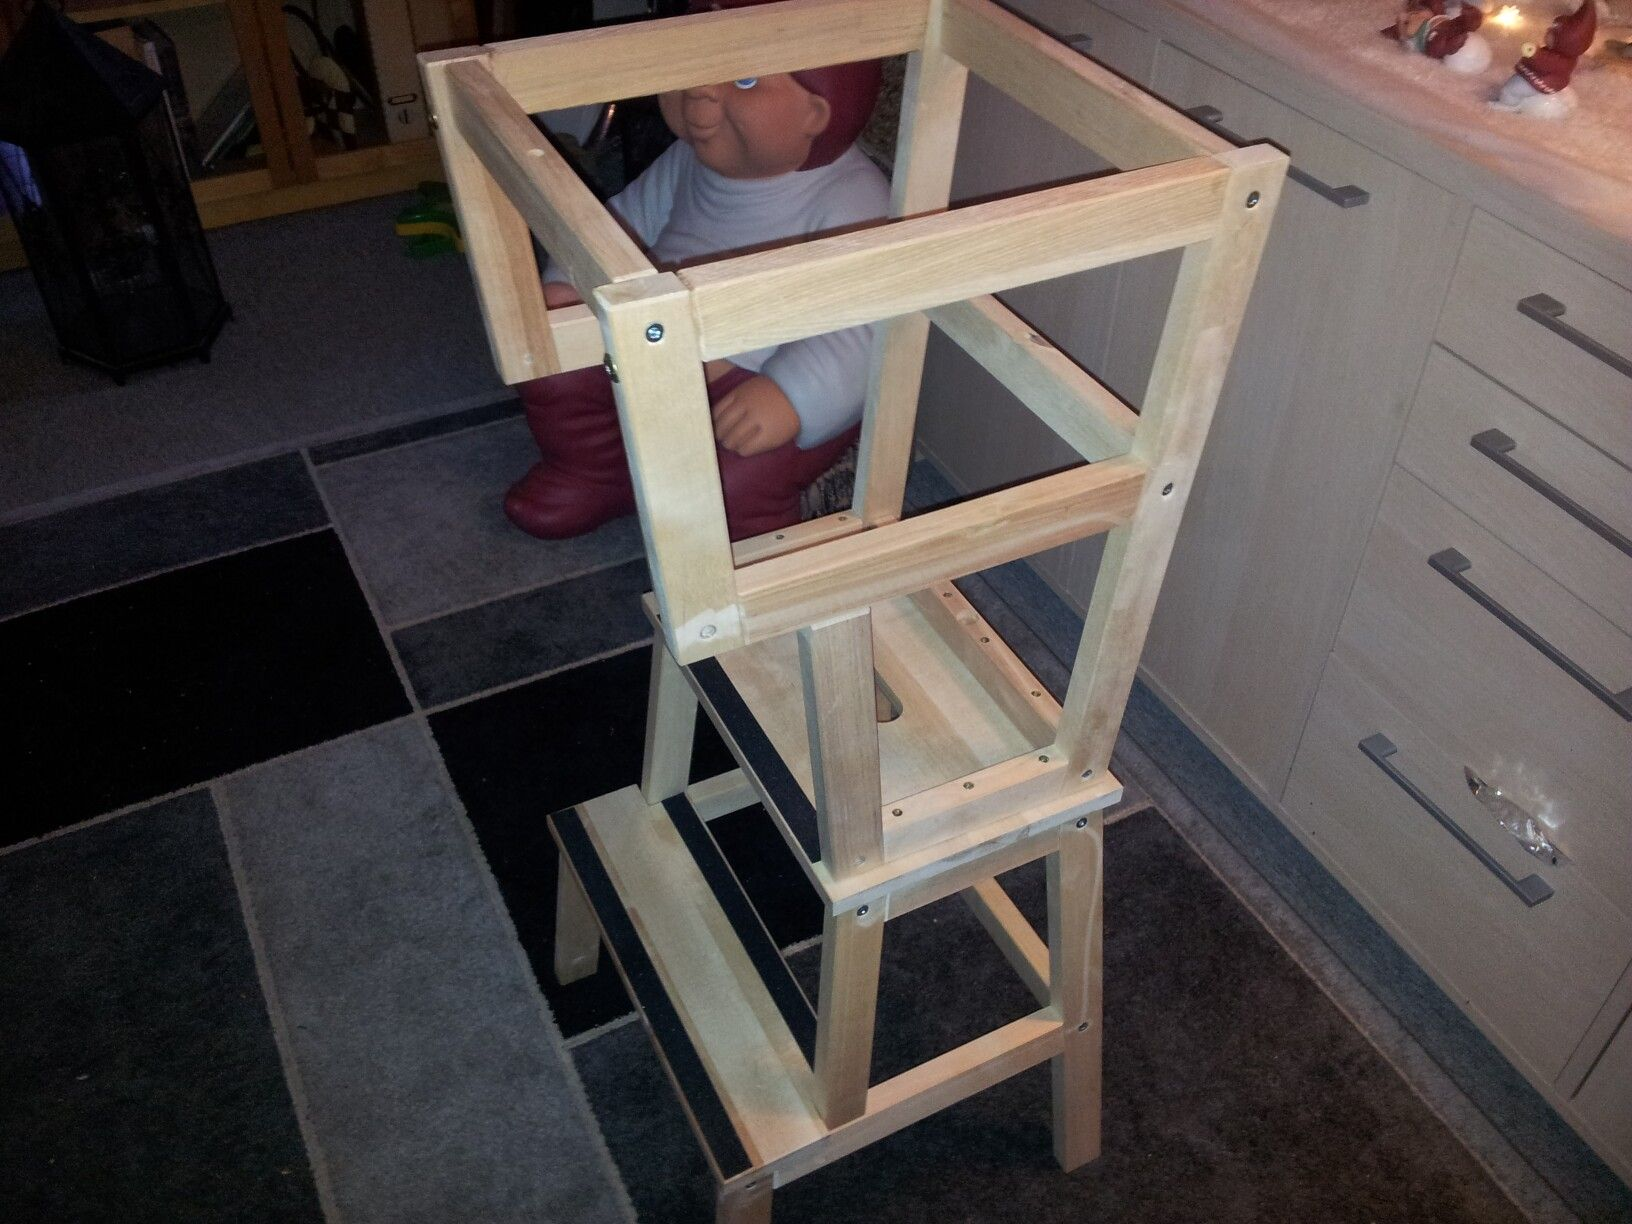 Sgabello Ikea Learning Tower : Learning tower build from ikea bekväm step stools my own